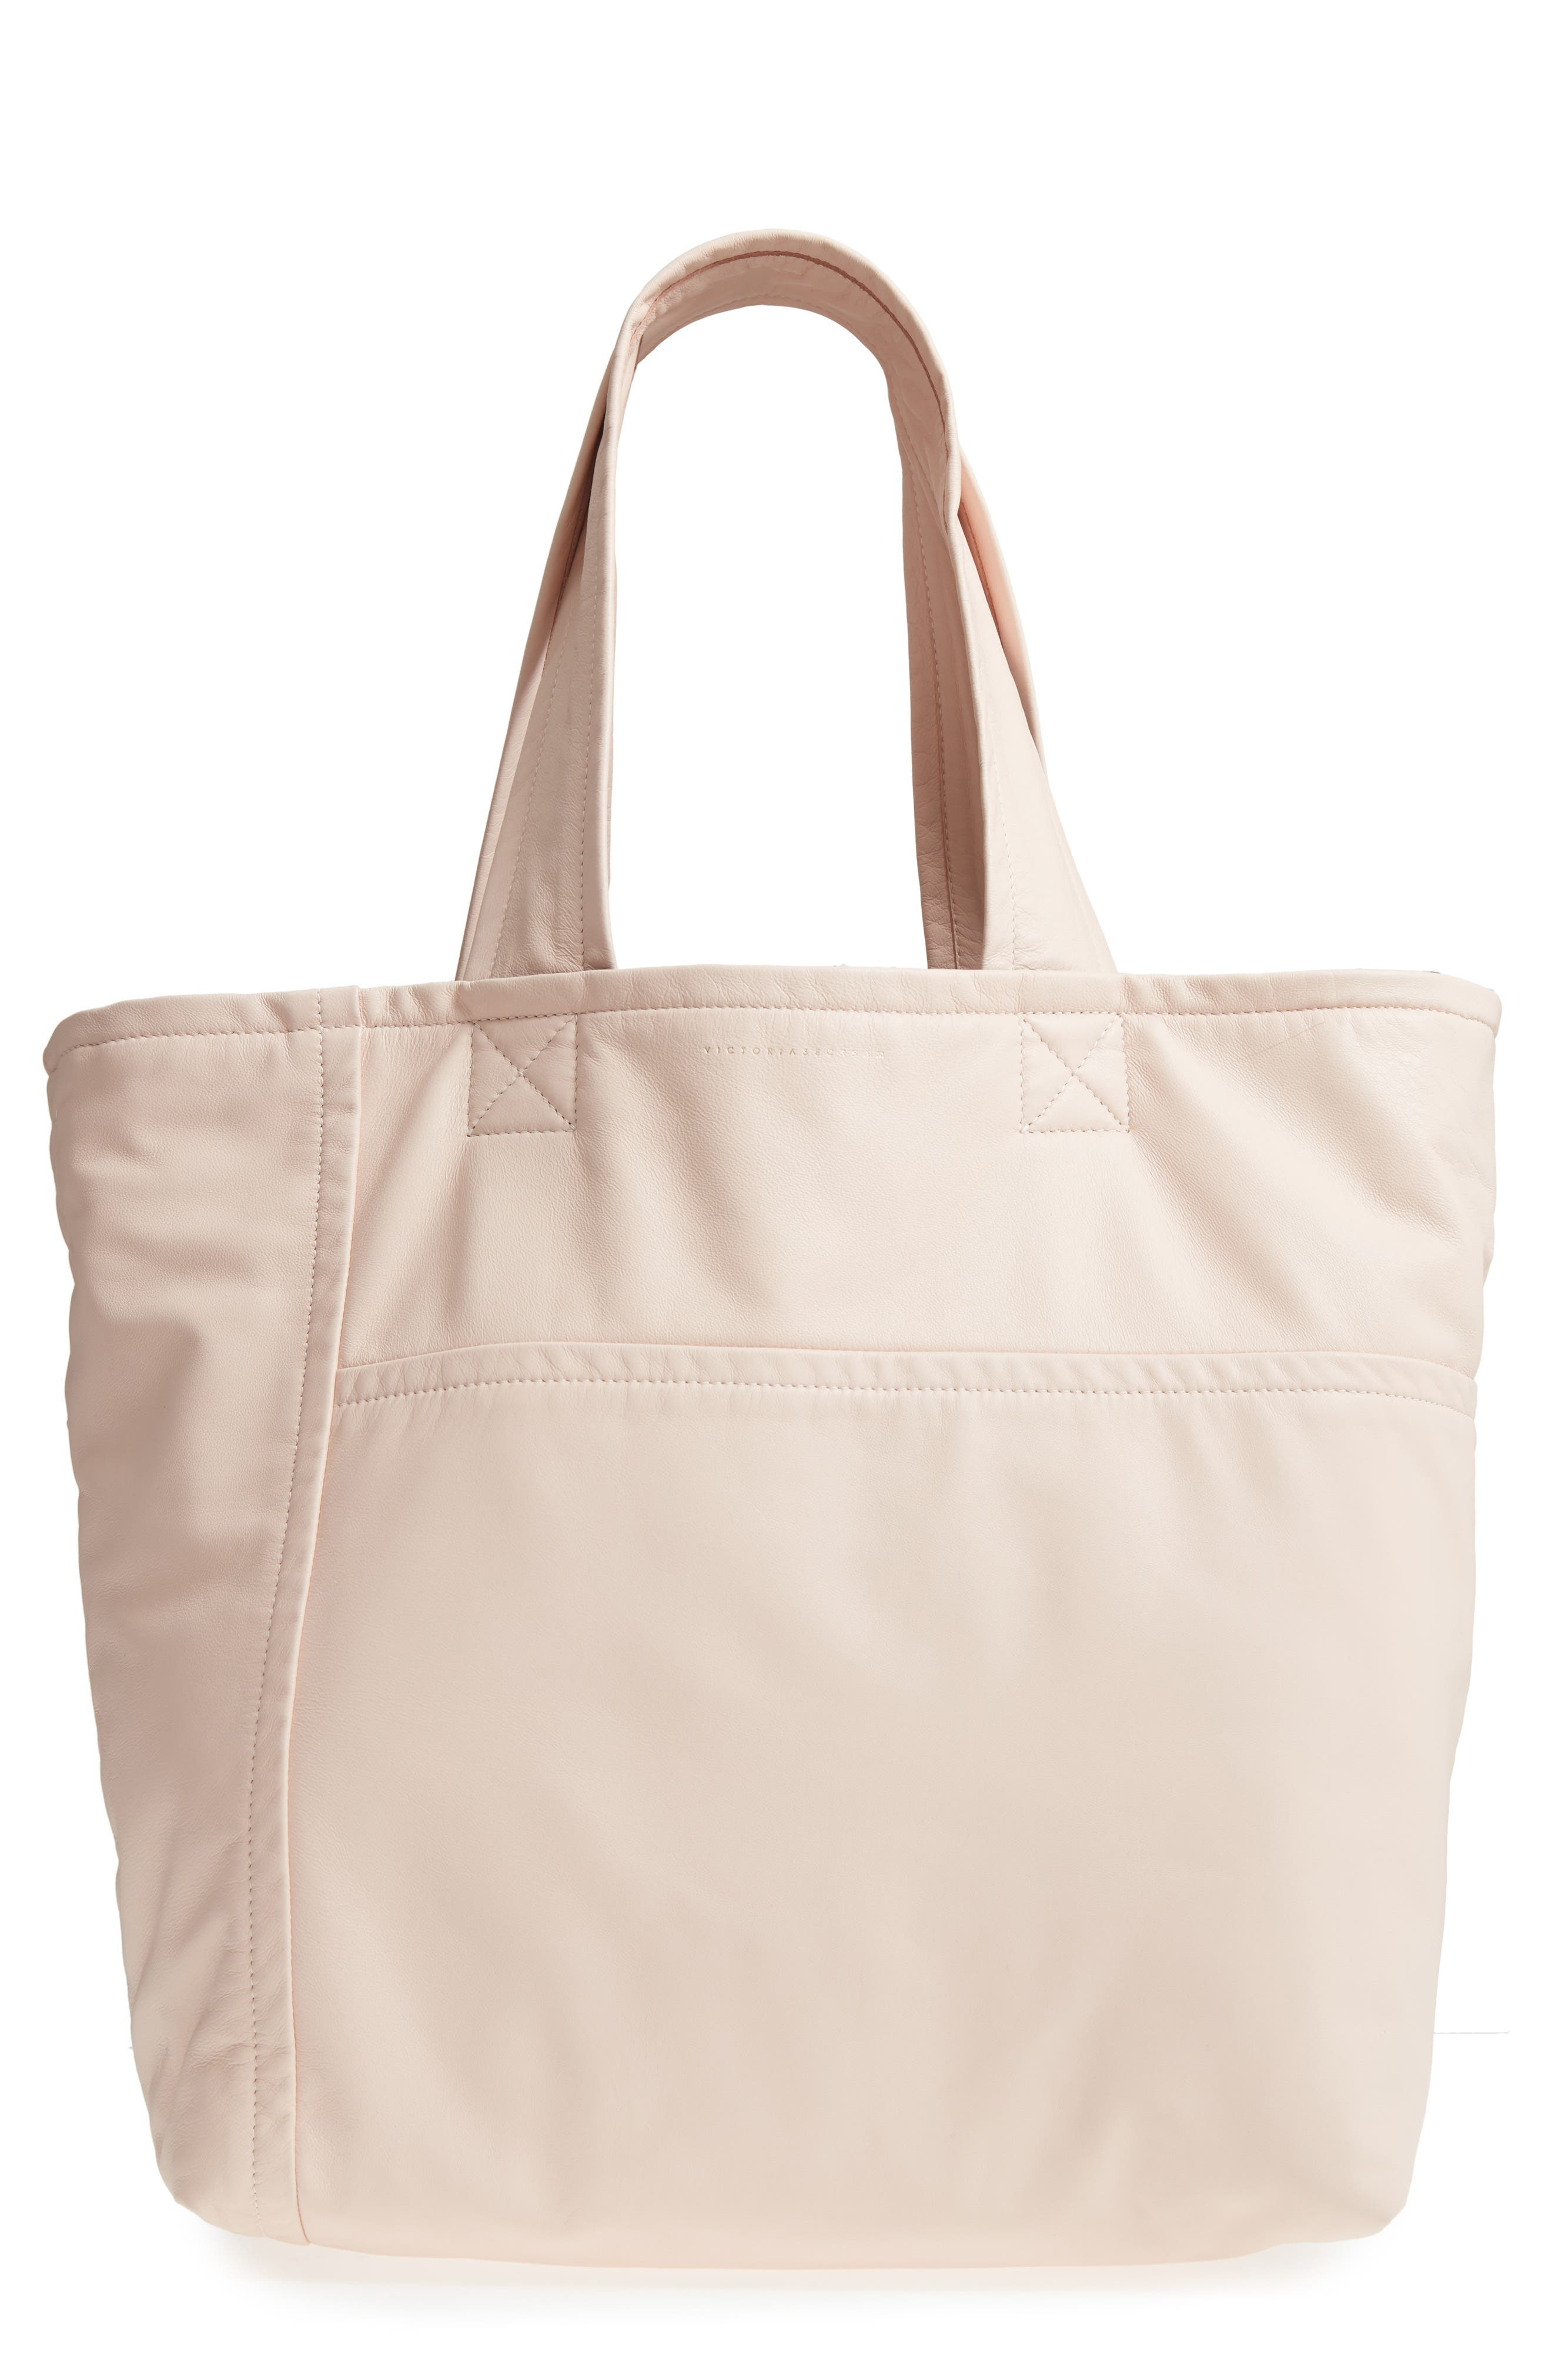 Sunday Tote,                         Main,                         color, 950